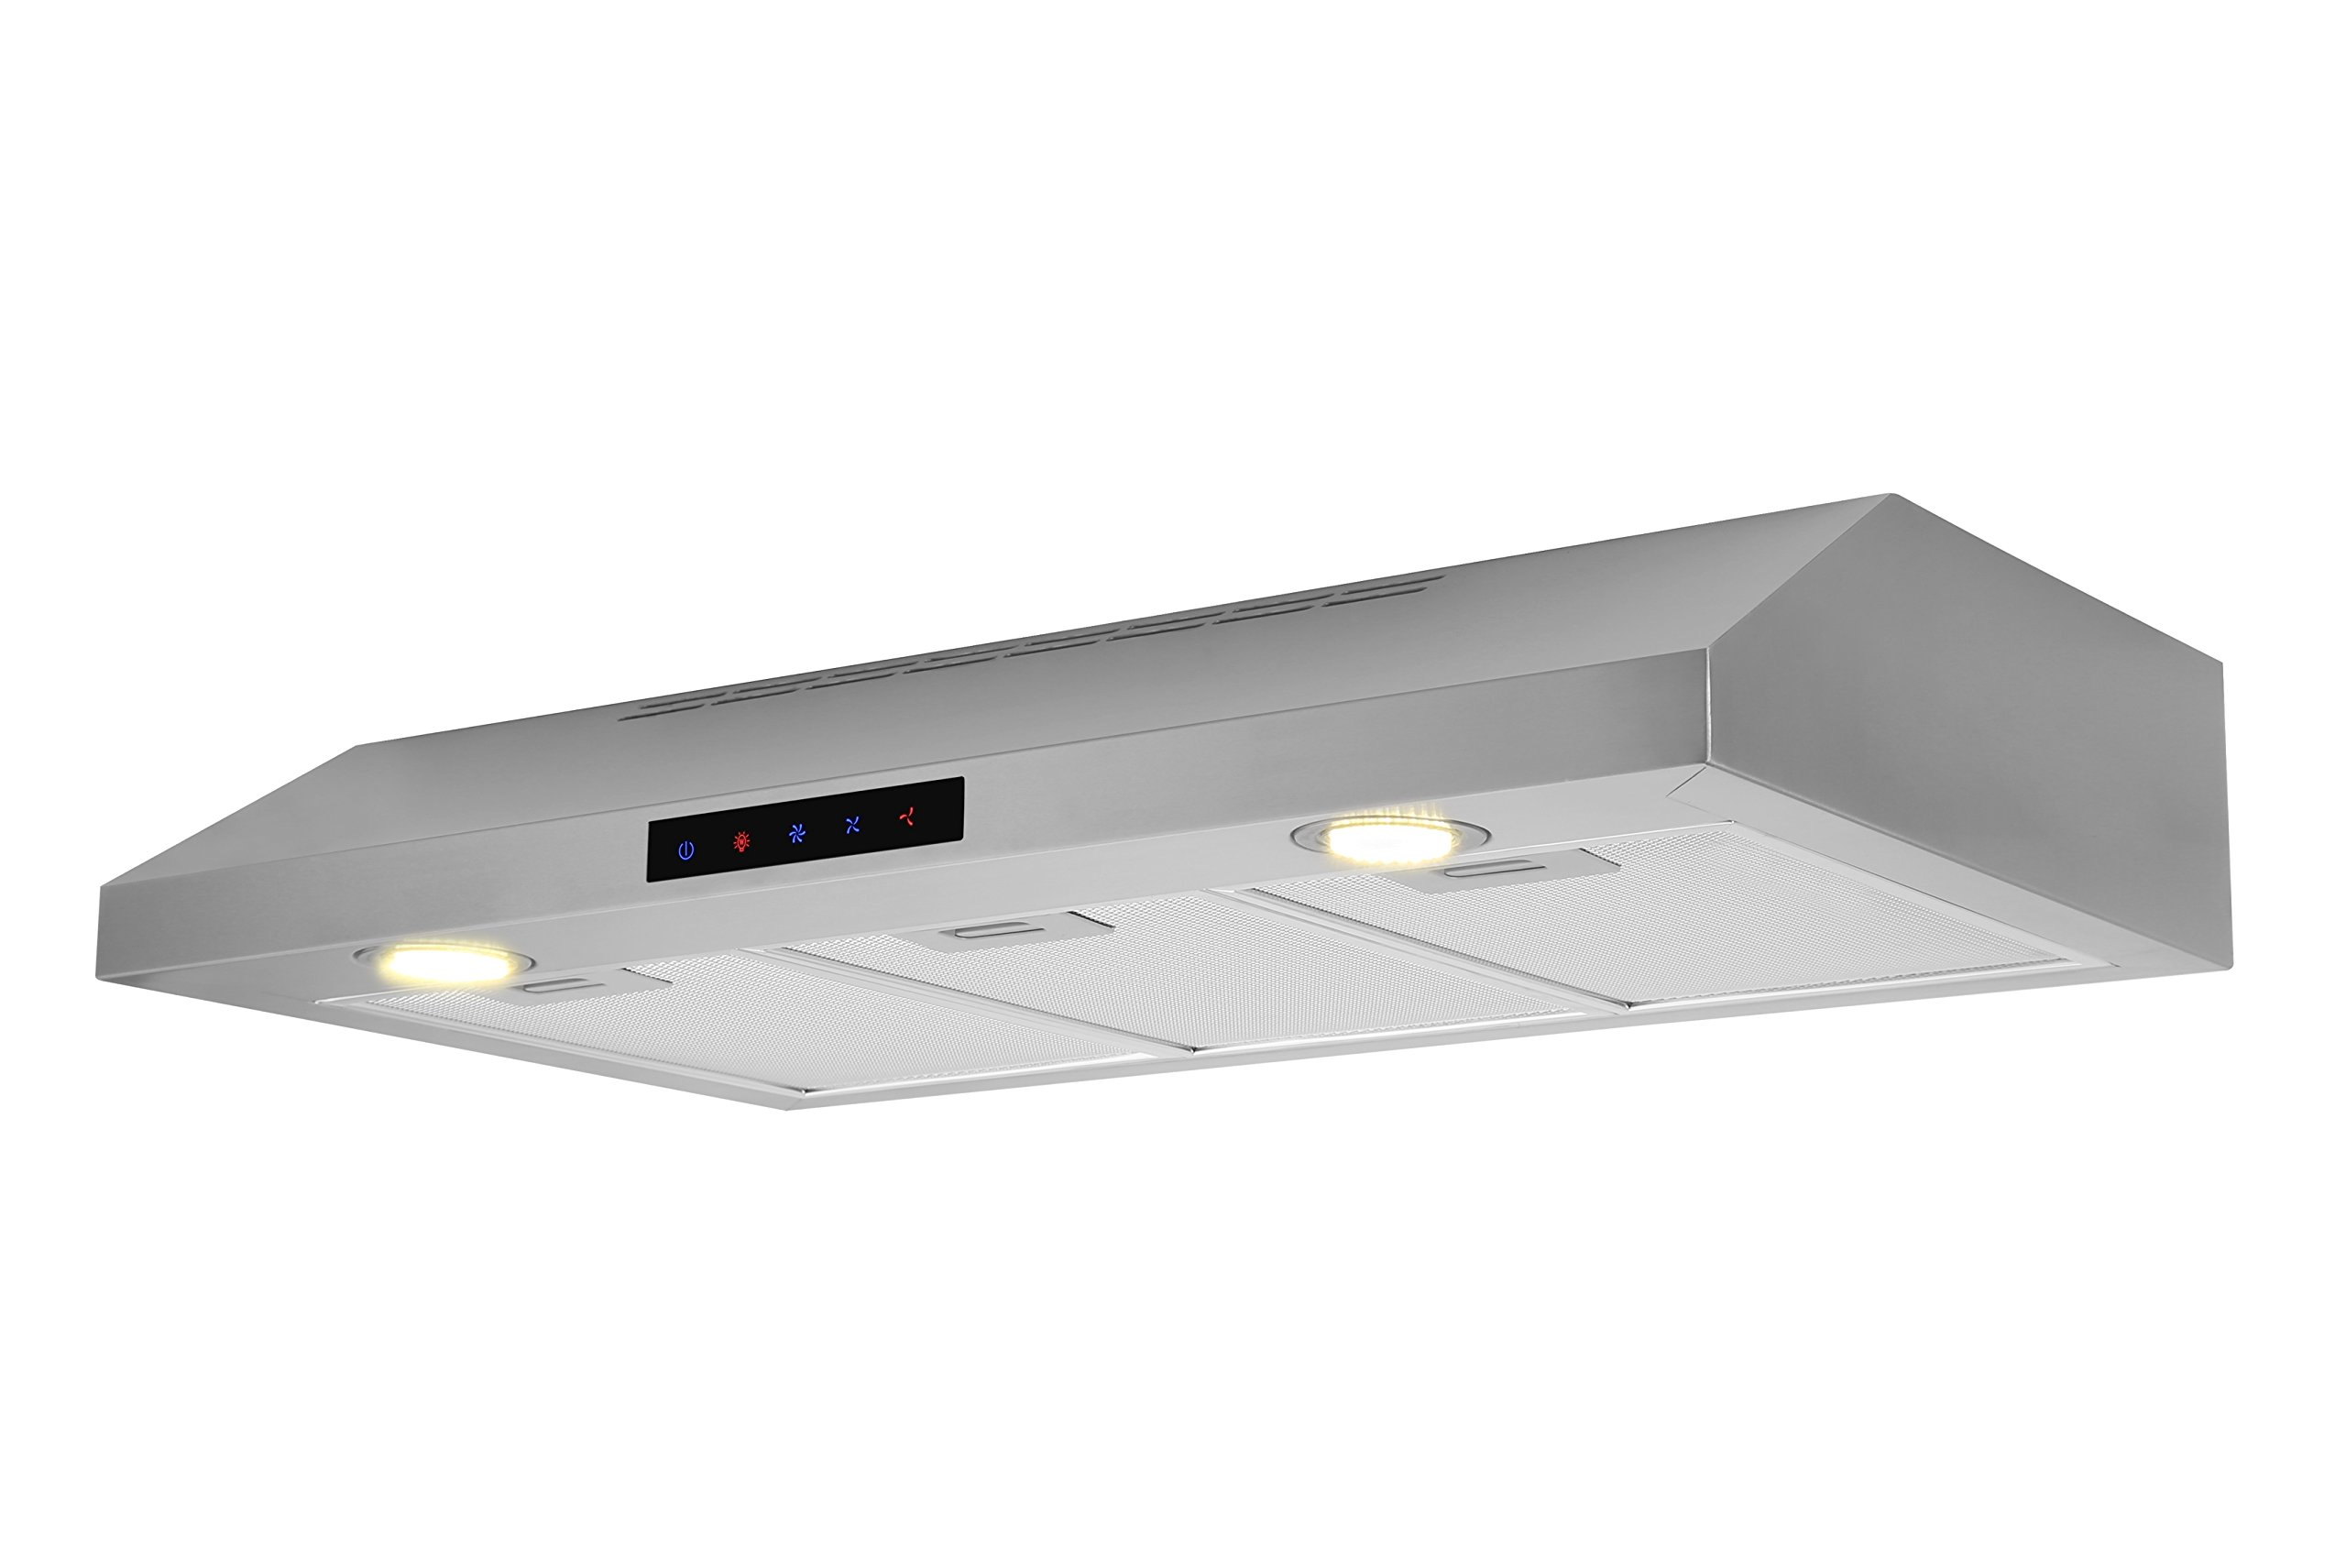 Kitchen Bath Collection WUC75-LED Stainless Steel Under-Cabinet Range Hood, 30'' by Kitchen Bath Collection